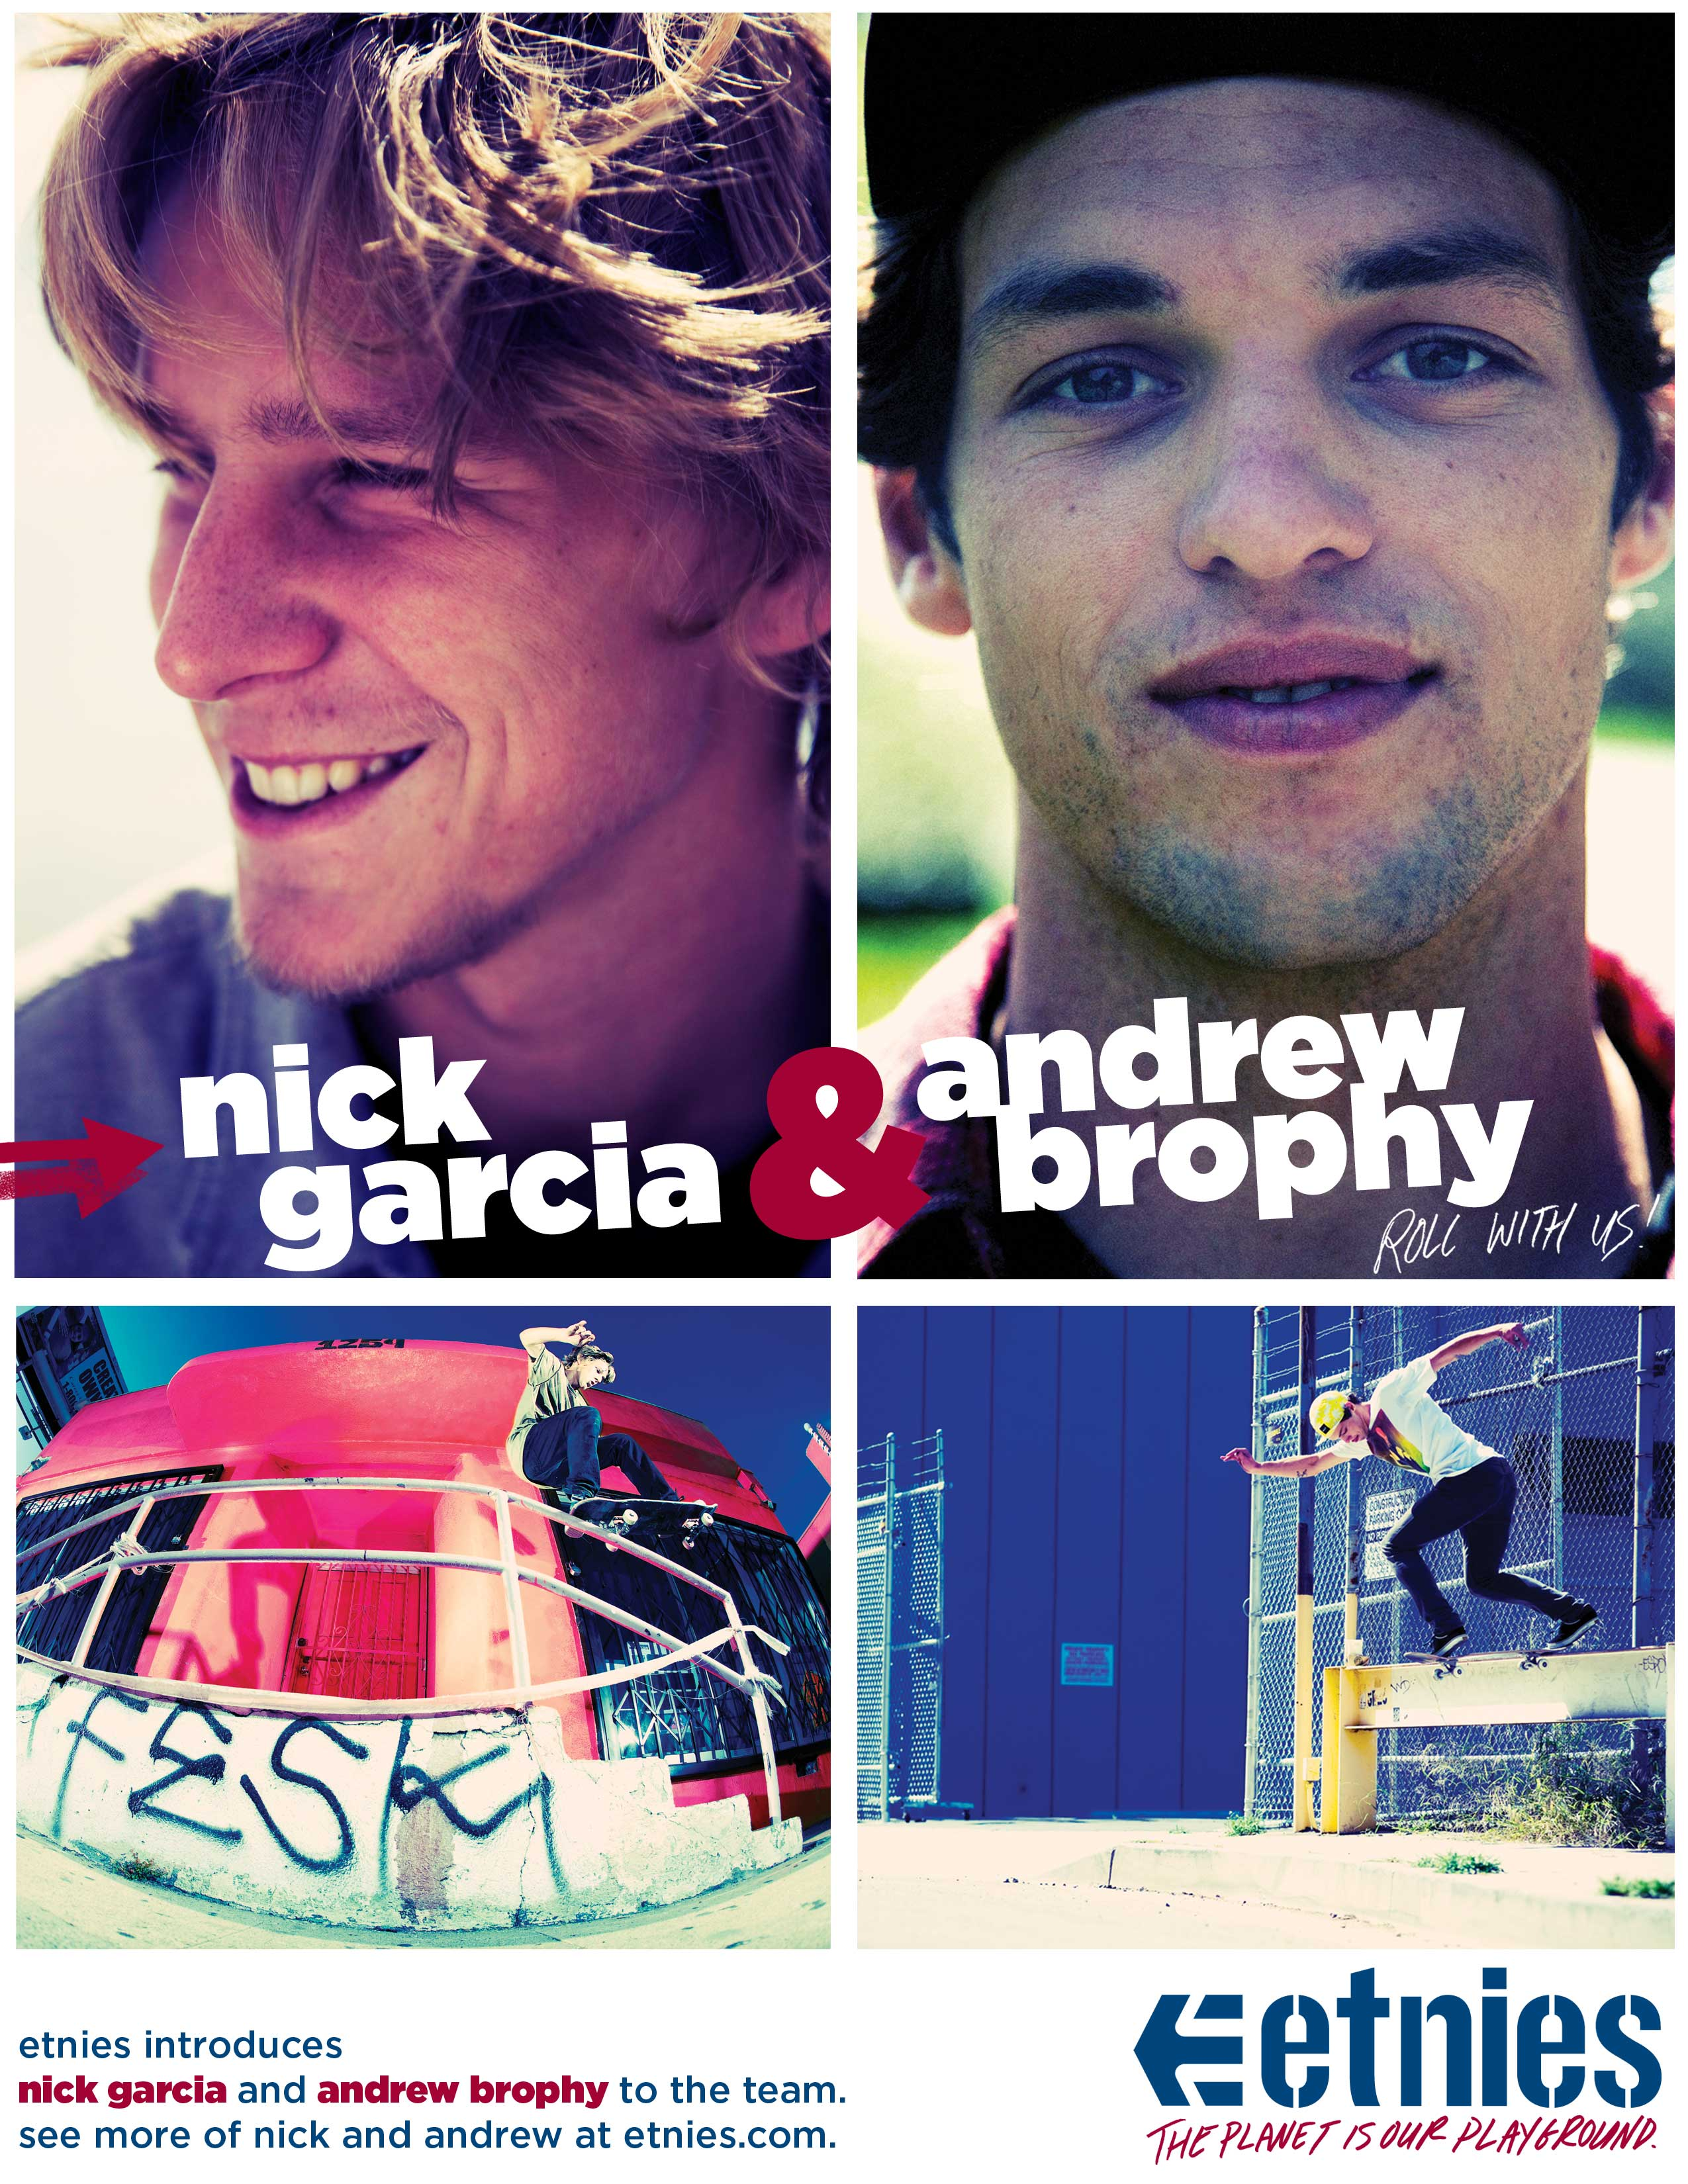 nick-garcia-and-andrew-brophy-roll-with-etnies